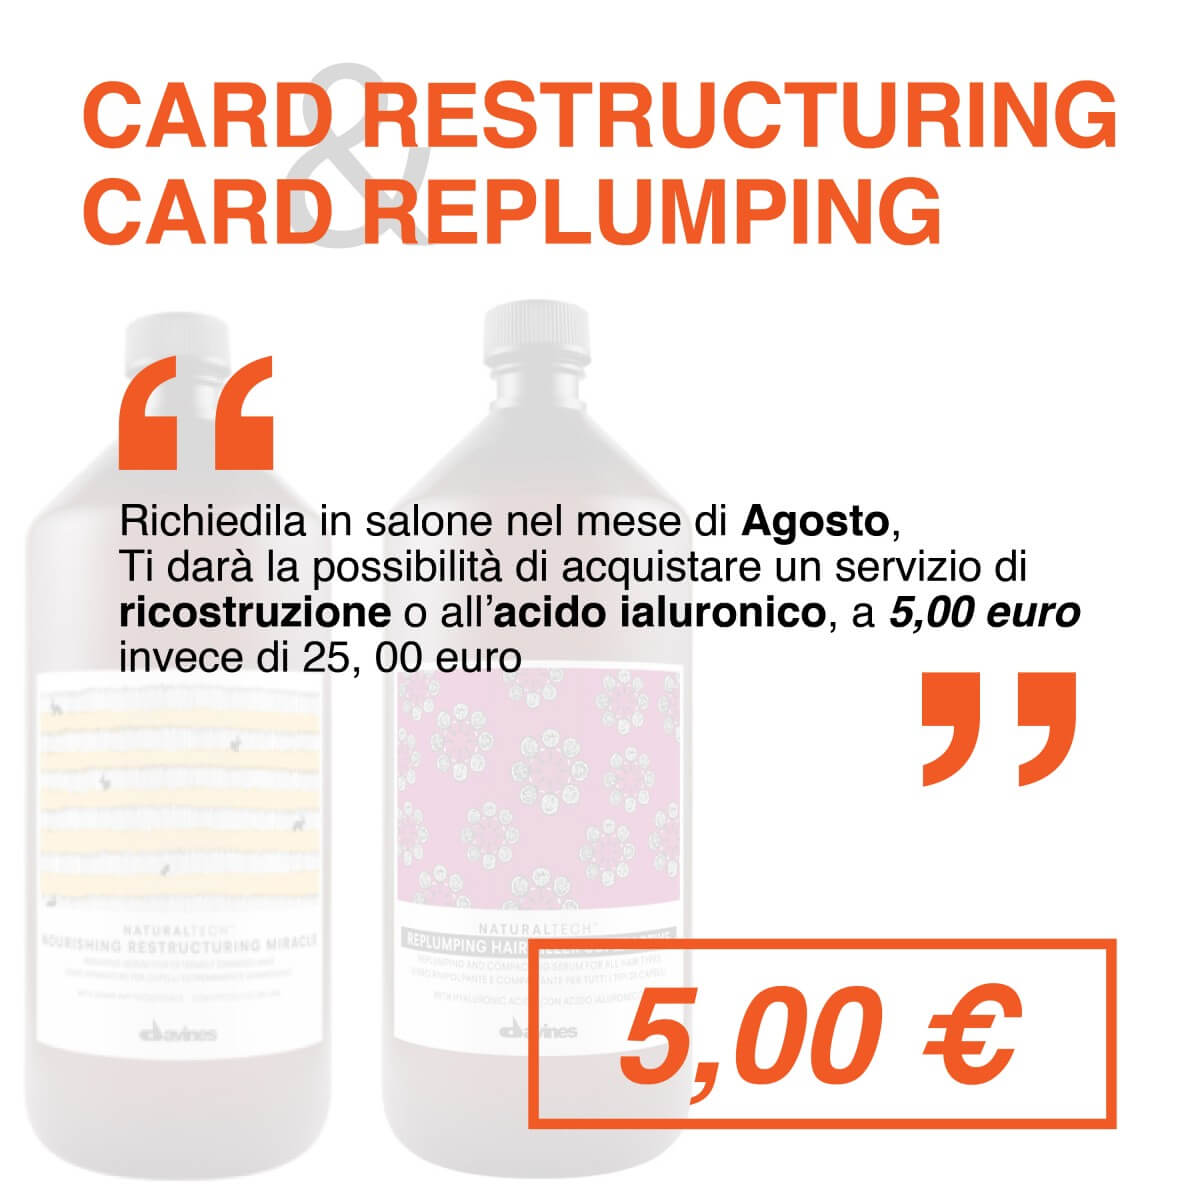 CARD RESTRUCTURING E REPLUMPING googlemybusiness